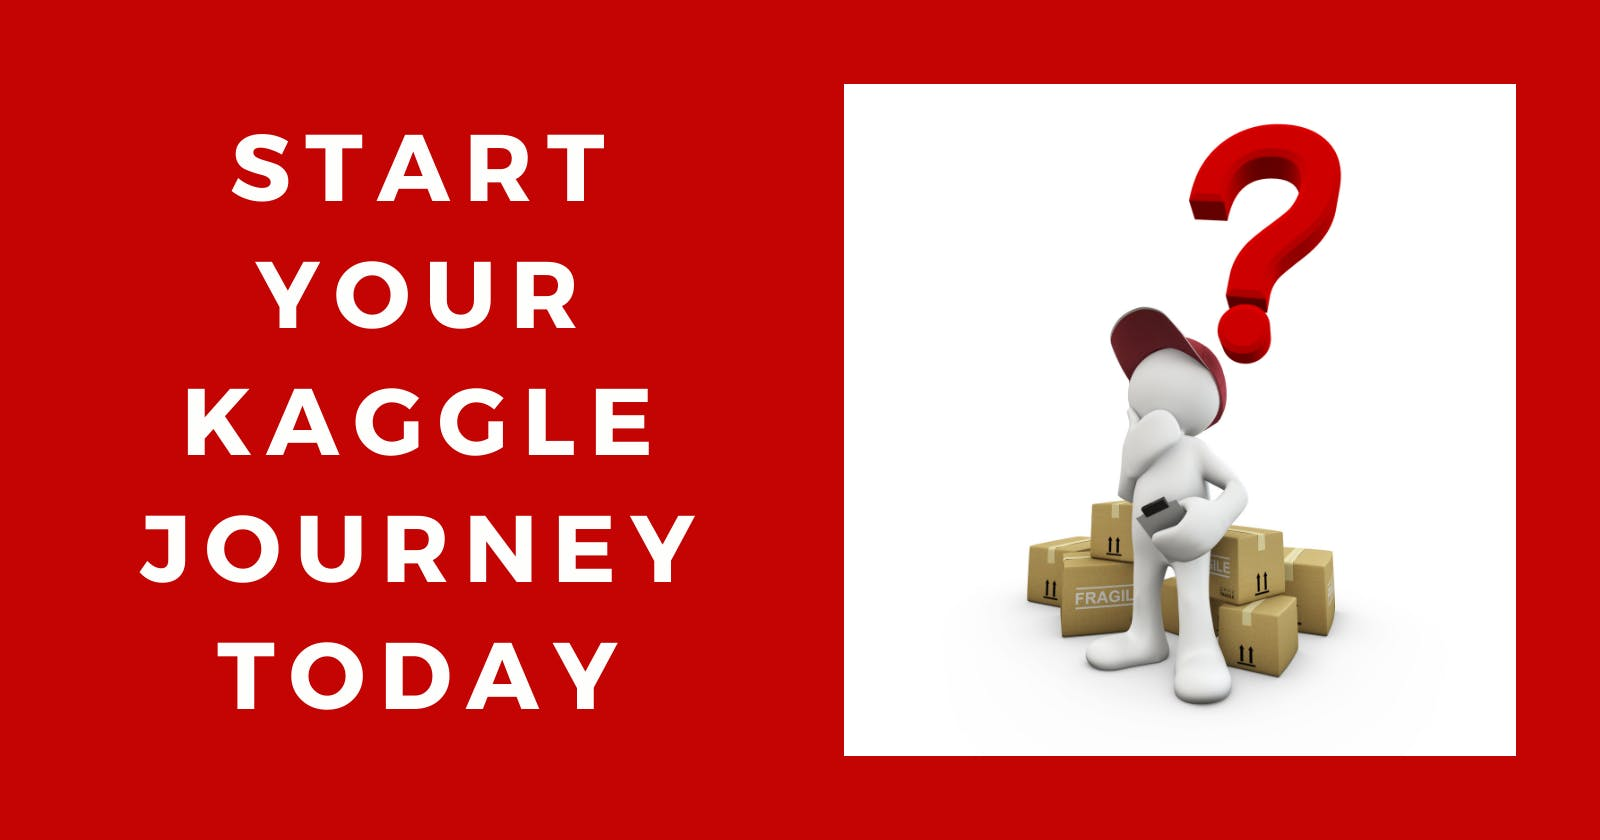 Start your Kaggle journey today!